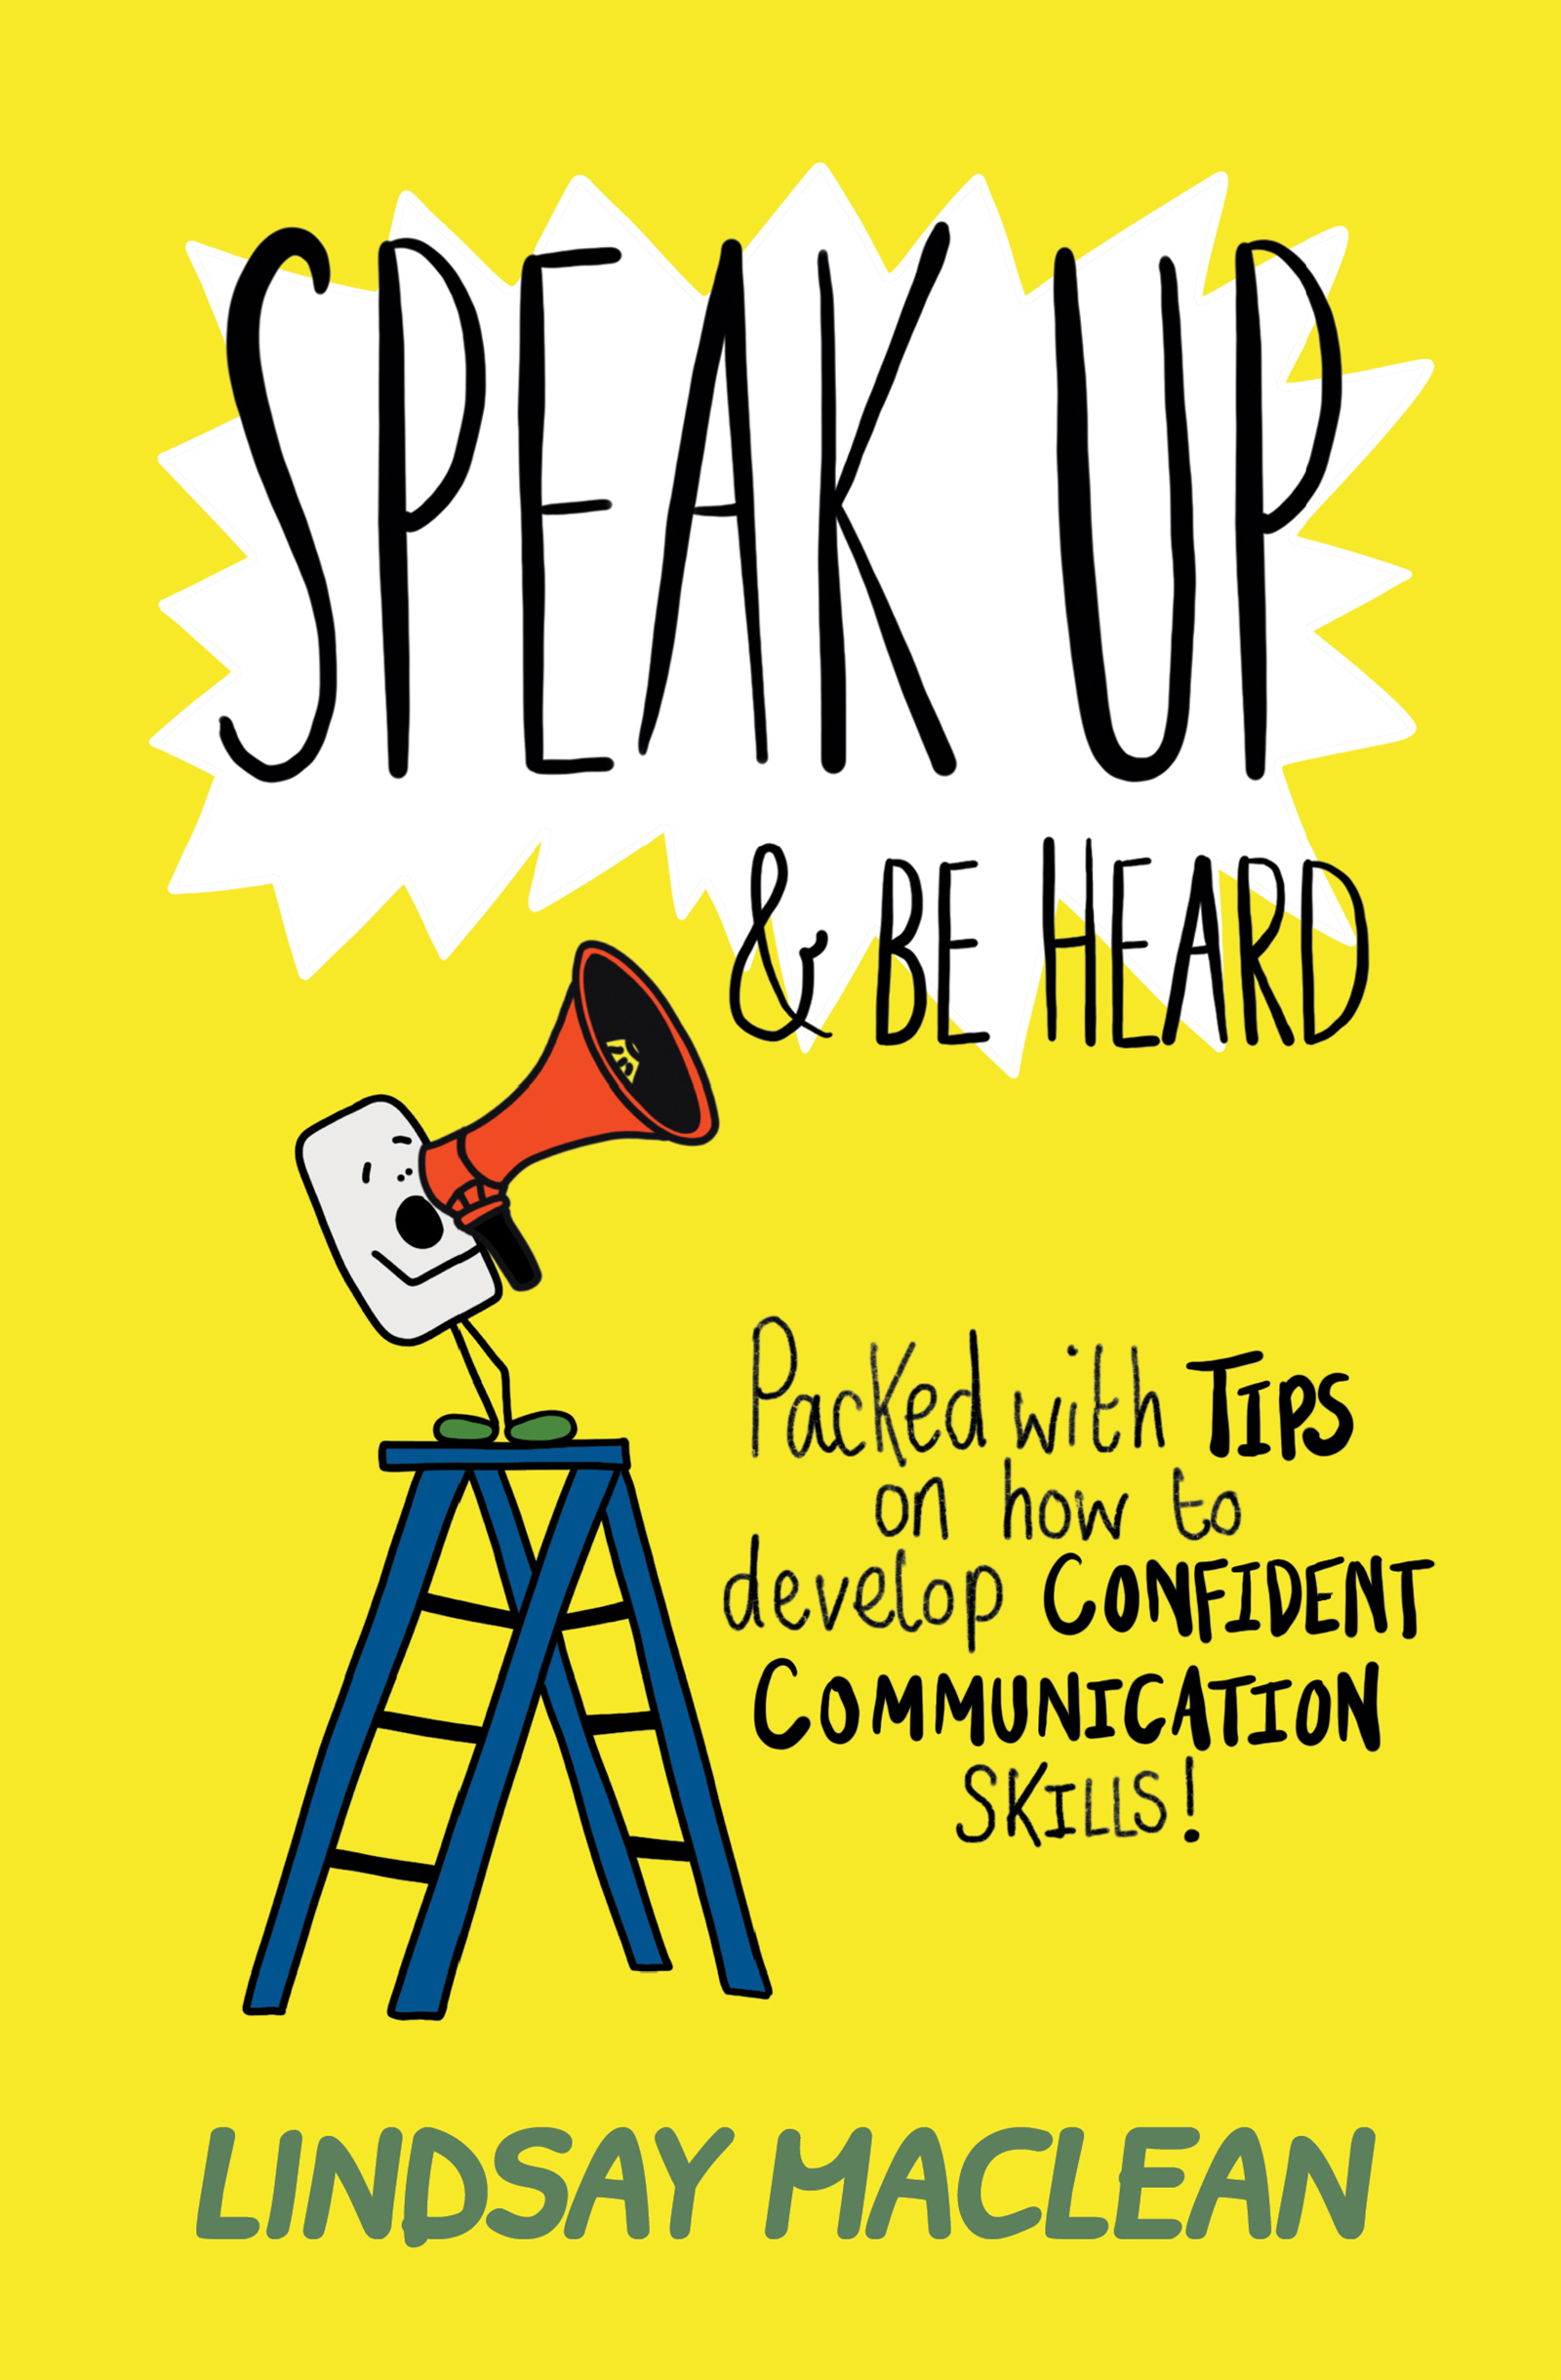 Speak Up and Be Heard: Packed with Tips on how to develop confident communications skills, reviewed